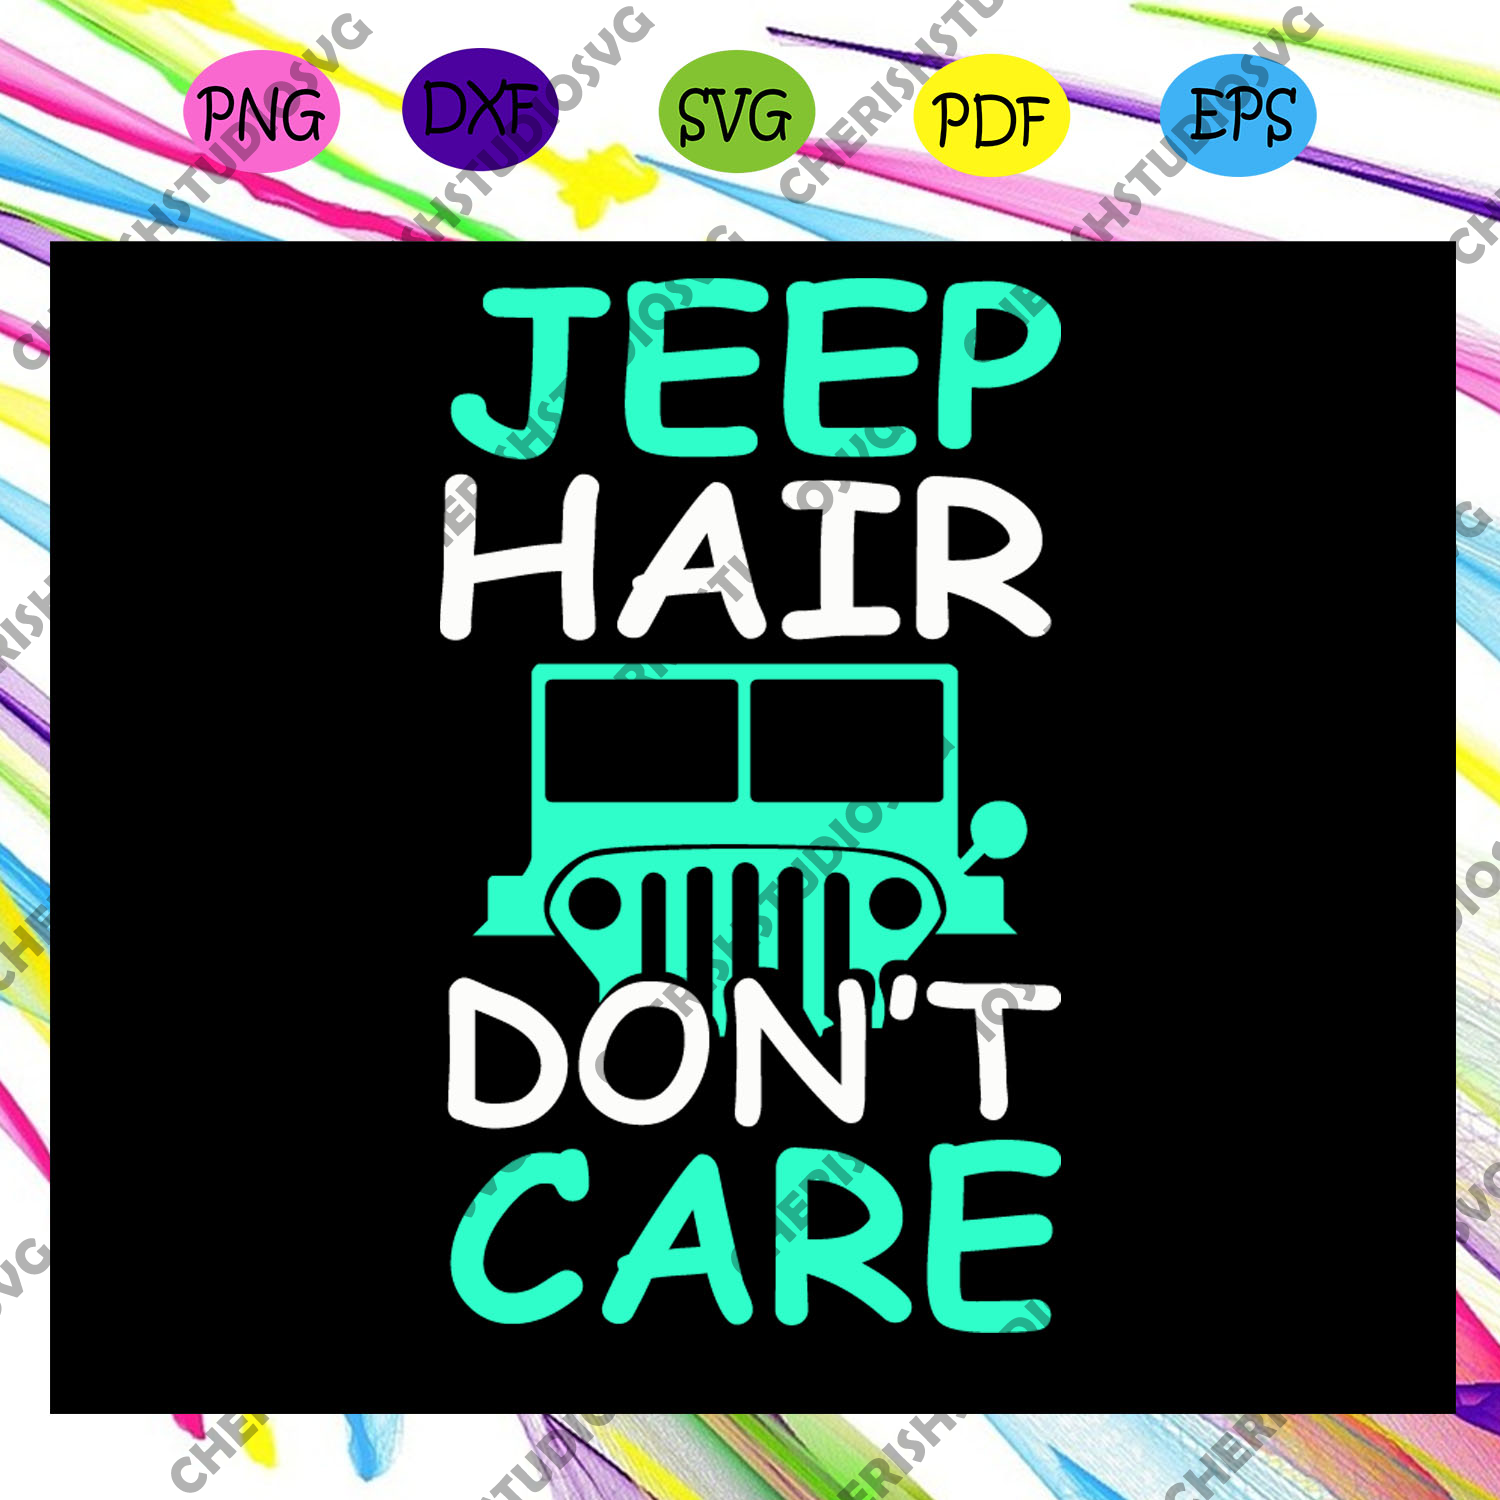 Jeep hair don't care,jeep life, jeep shirt, jeep lover, gift for family, jeep svg, jeep family, black jeep, funny jeep,trending svg Files For Silhouette, Files For Cricut, SVG, DXF, EPS, PNG, Instant Download